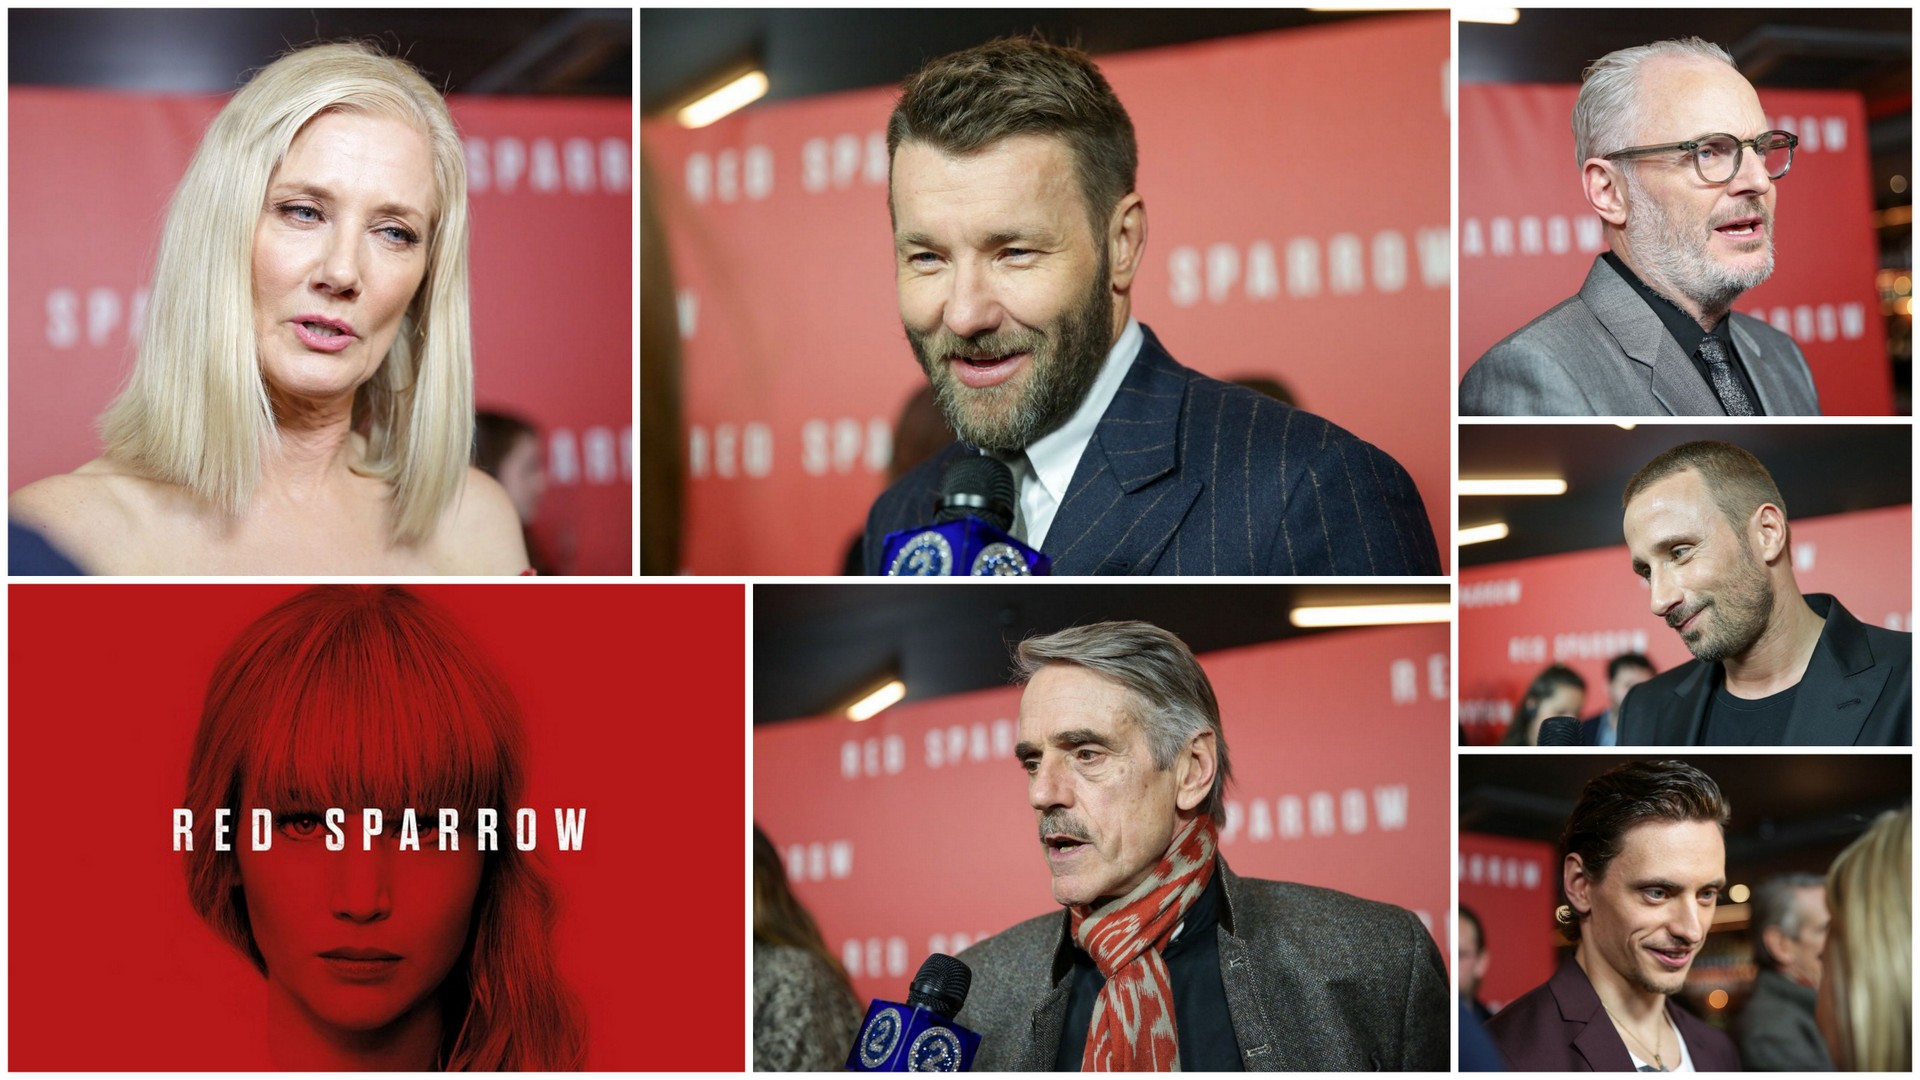 Red Sparrow Premiere